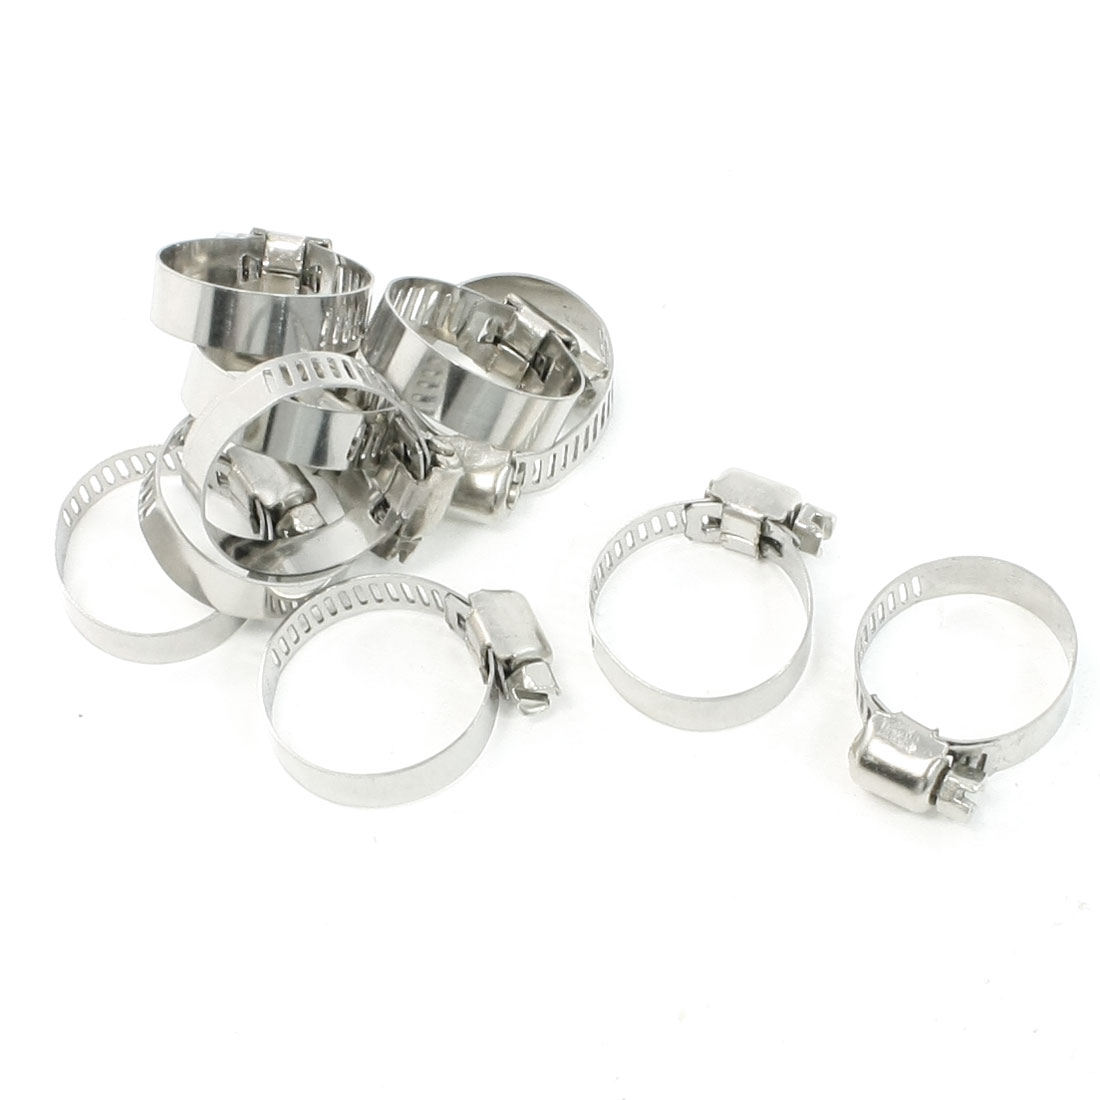 10 Pcs Adjustable Stainless Steel Worm Drive Hose Clips 16mm-25mm